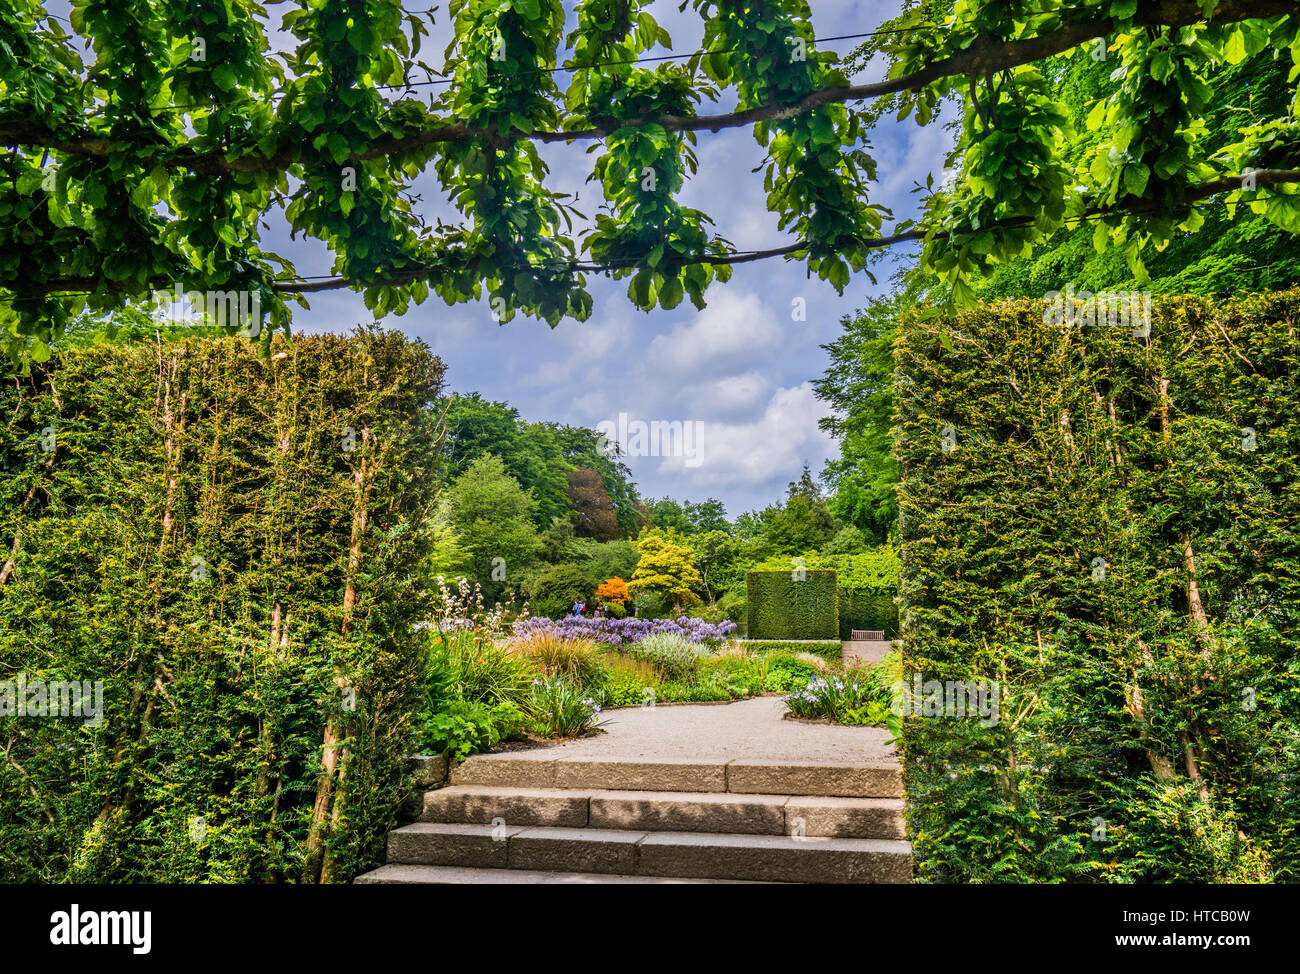 Great Britain, South West England, Devon, the formal Gardens of Castle Drogo in its setting on the edge of Dartmoor - Stock Image